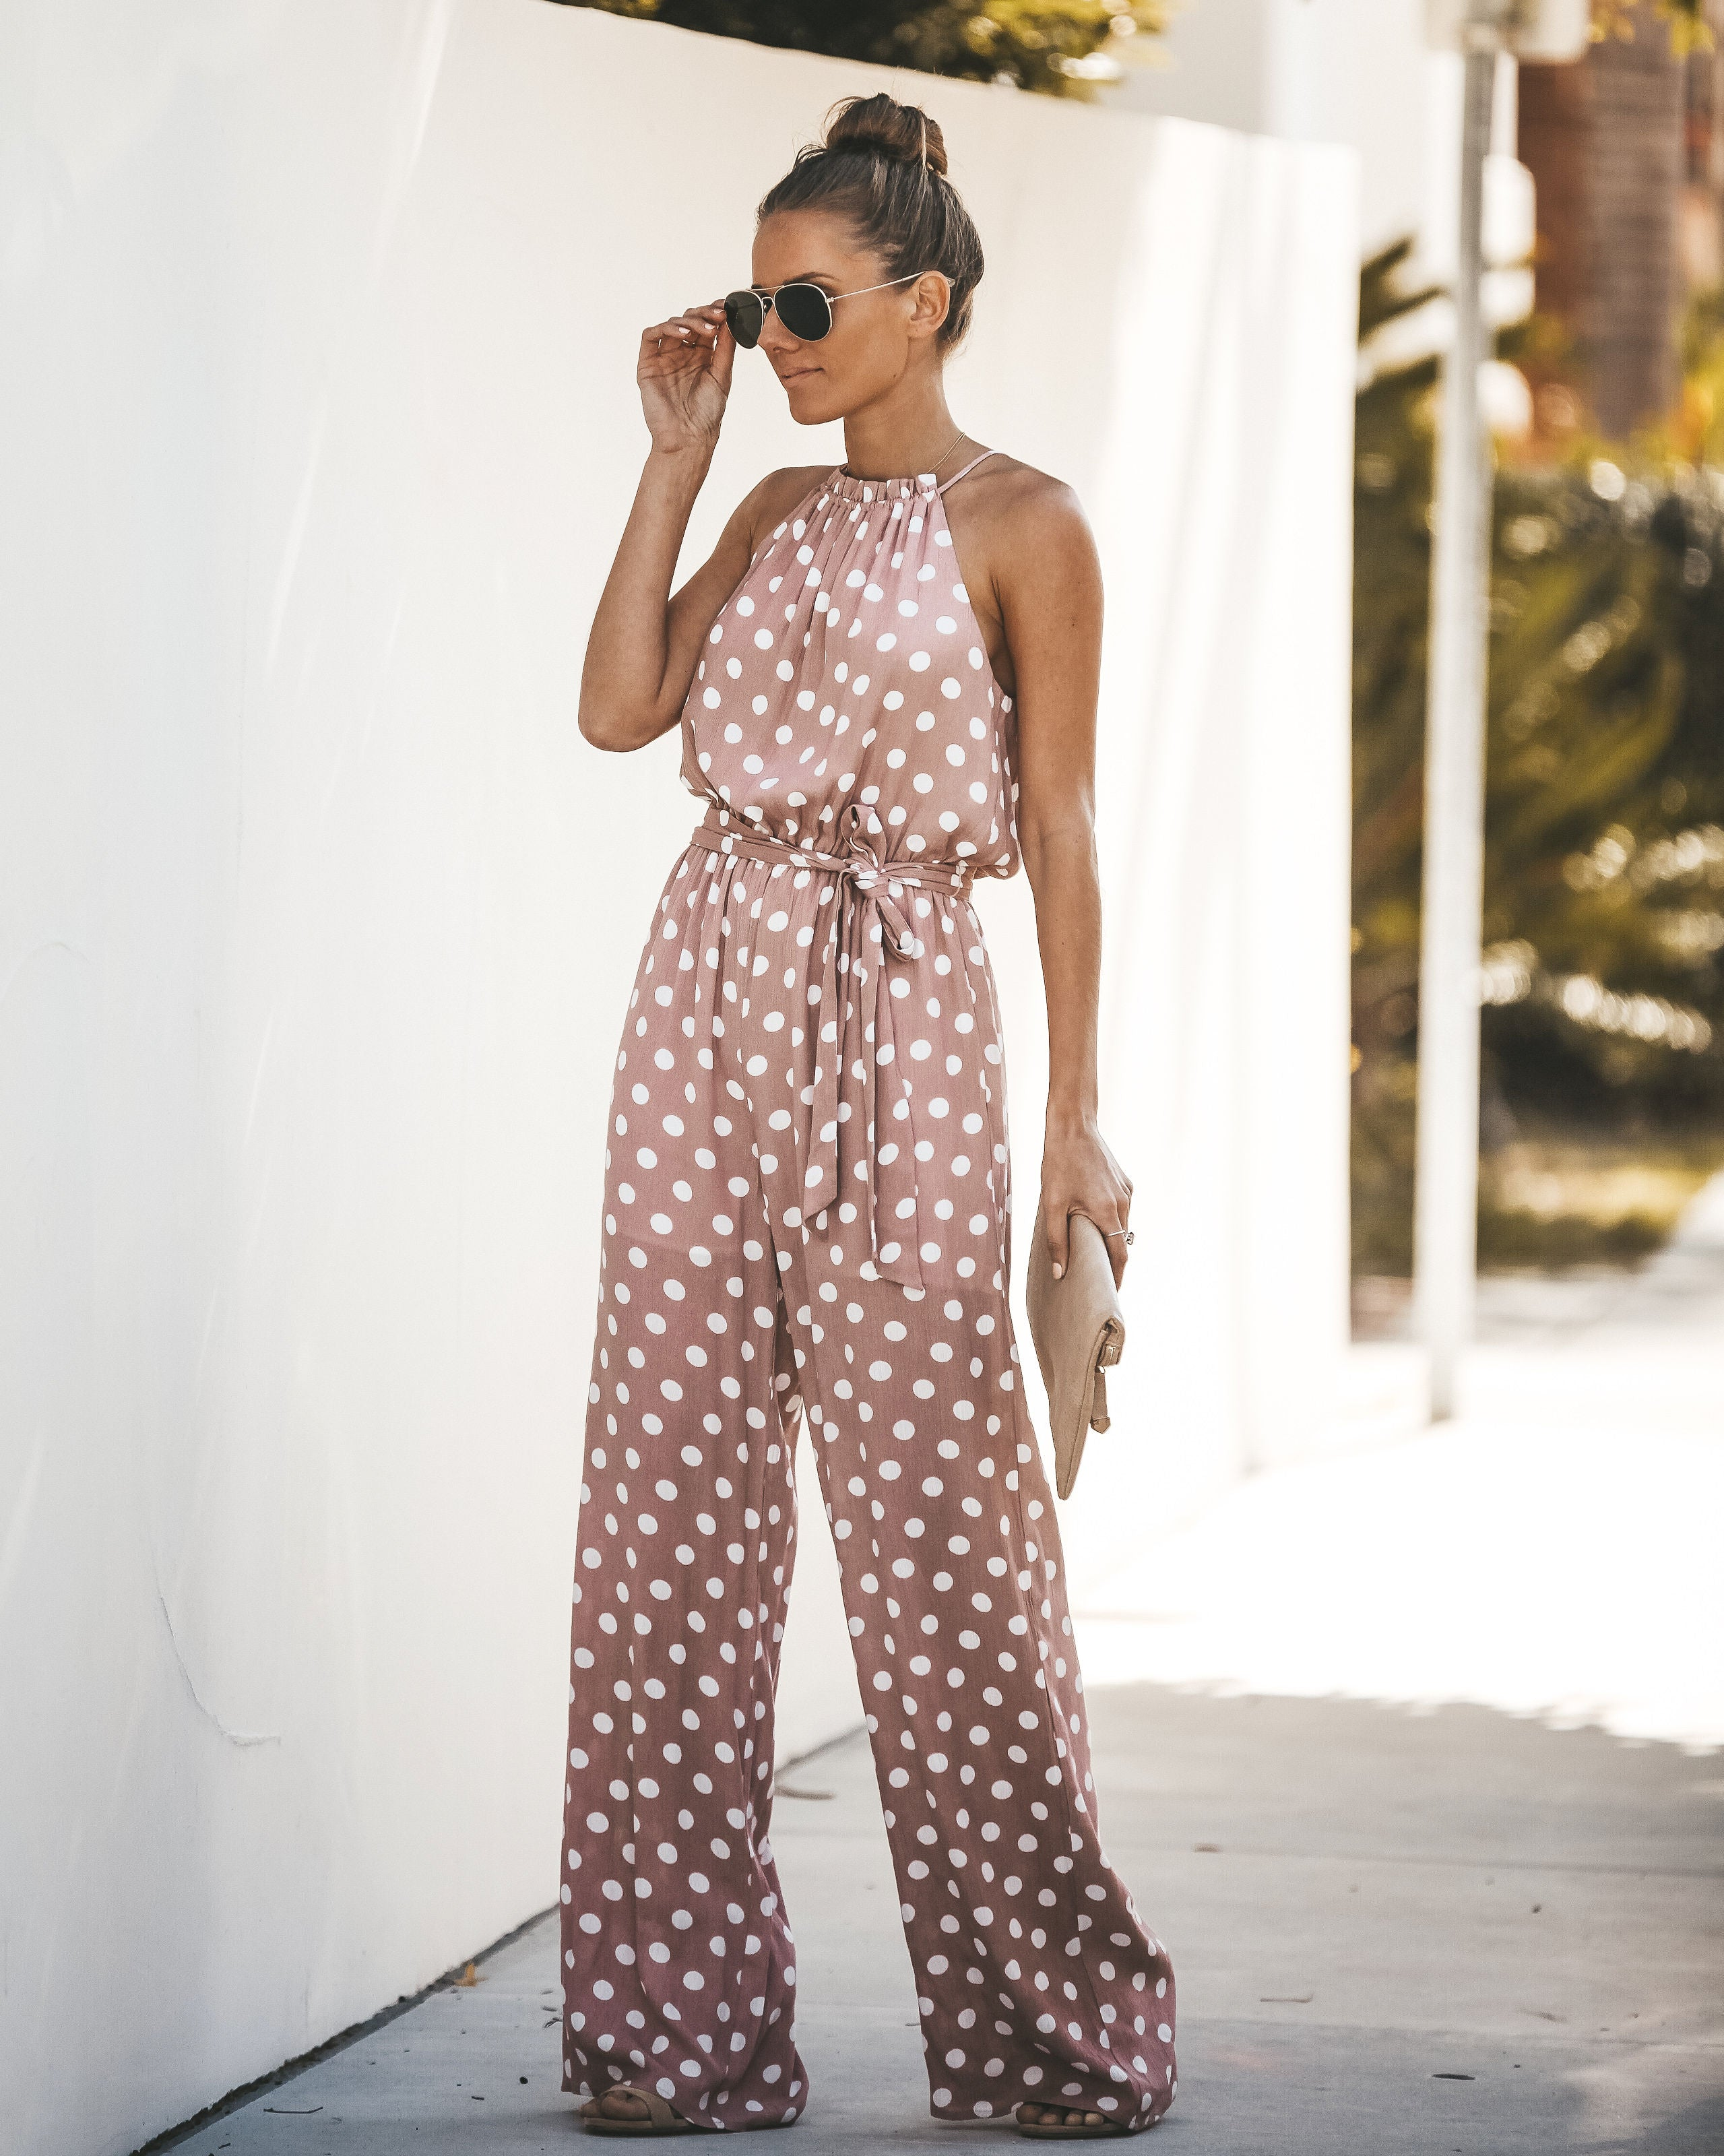 a79b499f918 Detail Product. ← Home - EXTRA SMALL - Pretty Little Polka Dot Jumpsuit